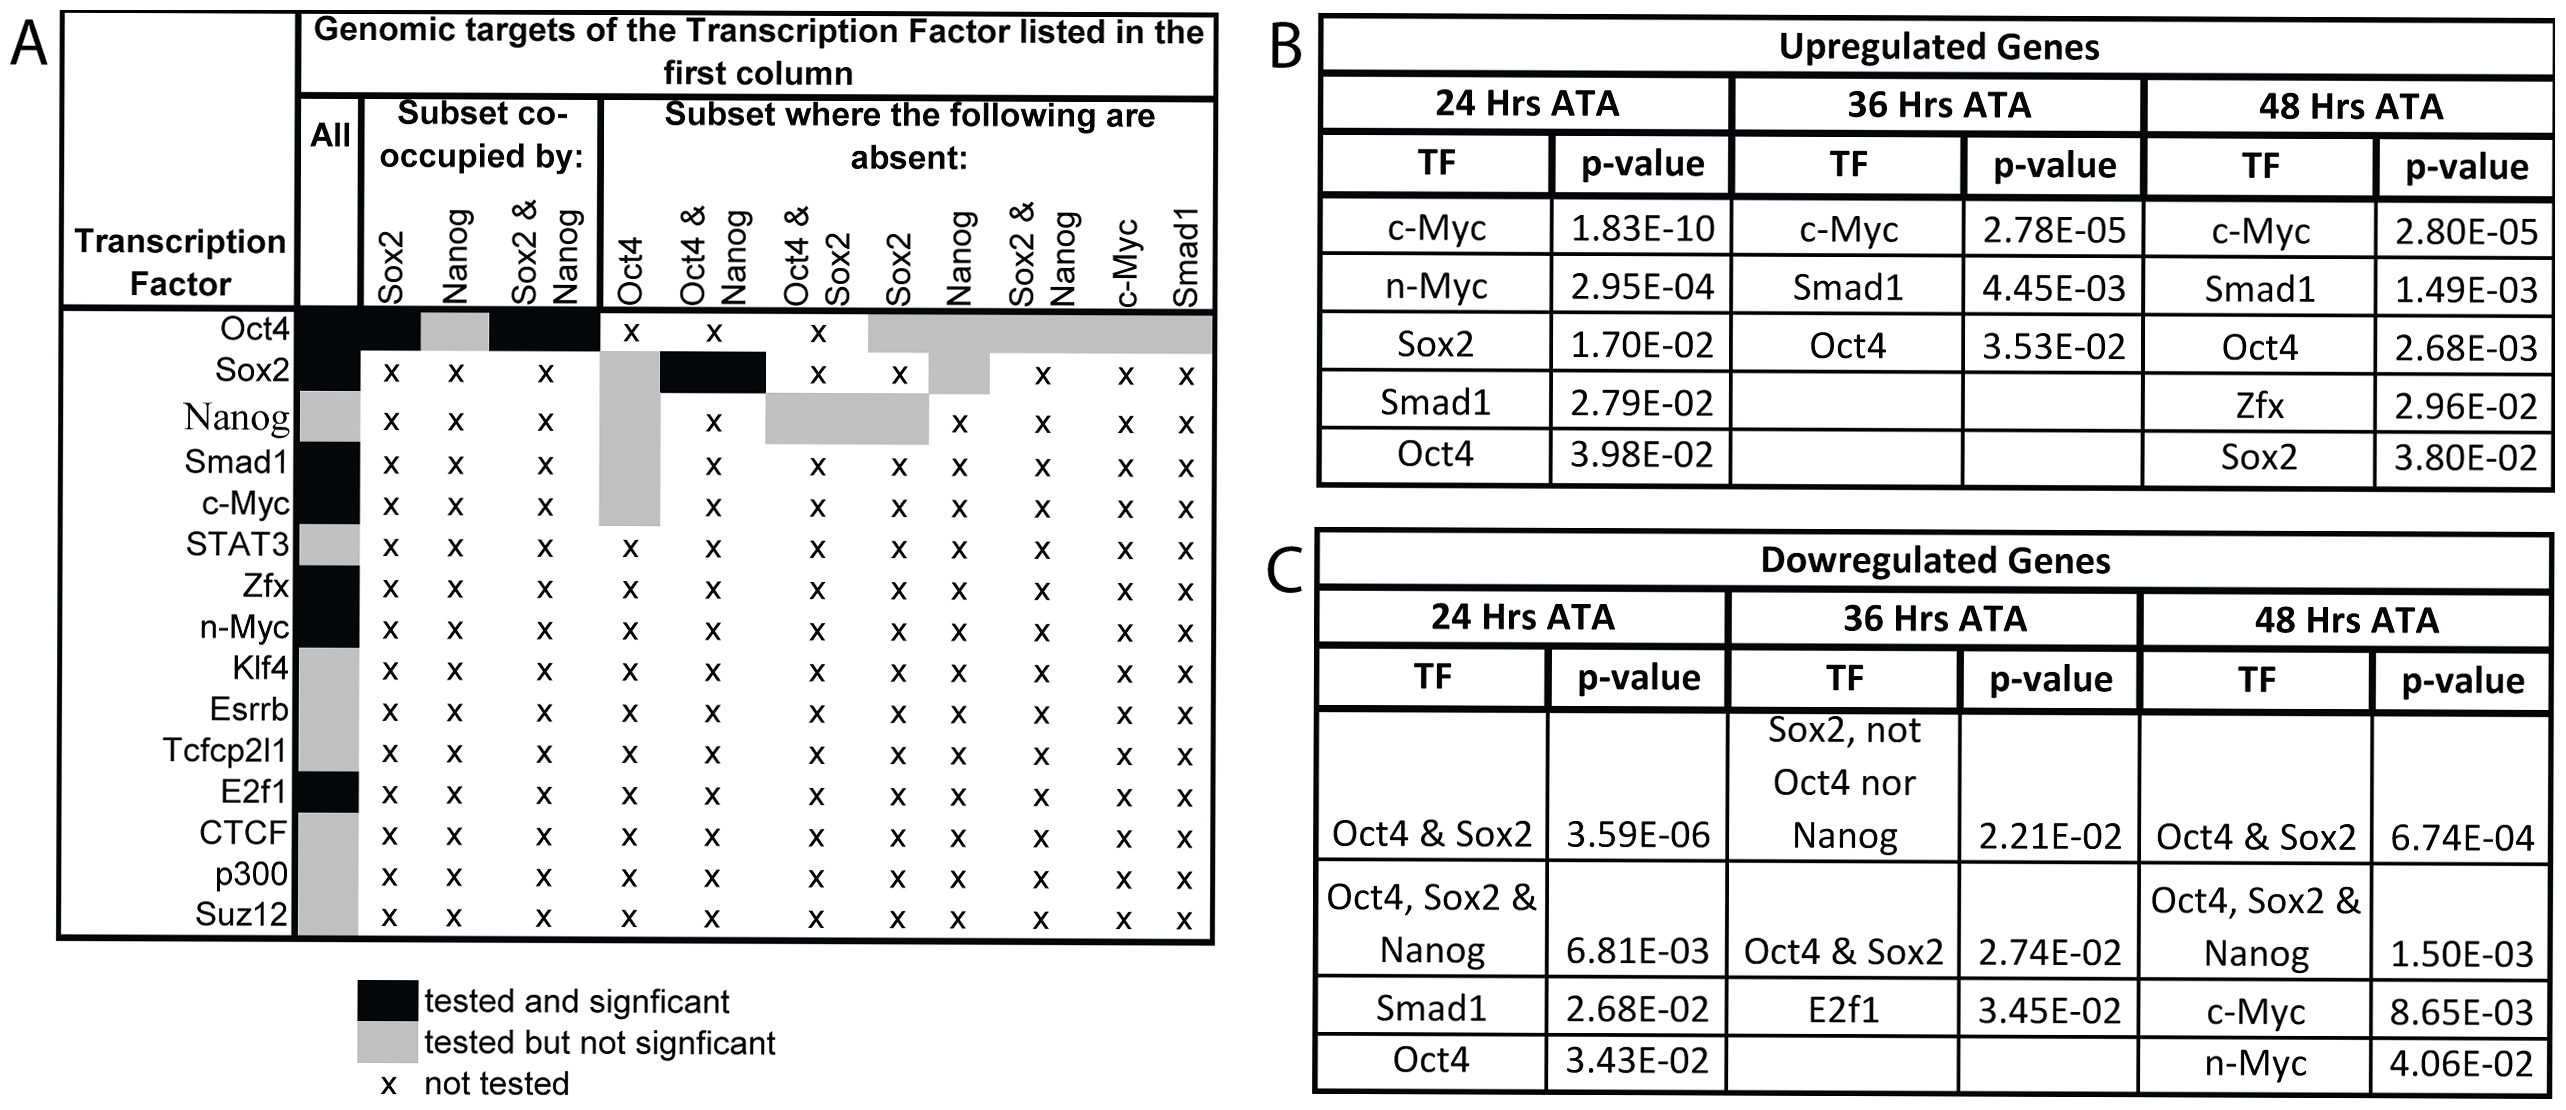 Gene expression profiling coincident with and following Oct4 depletion indicates that c-Myc, Smad1 and Oct4 targets are up-regulated while targets co-occupied by Oct4 and Sox2 are down-regulated.